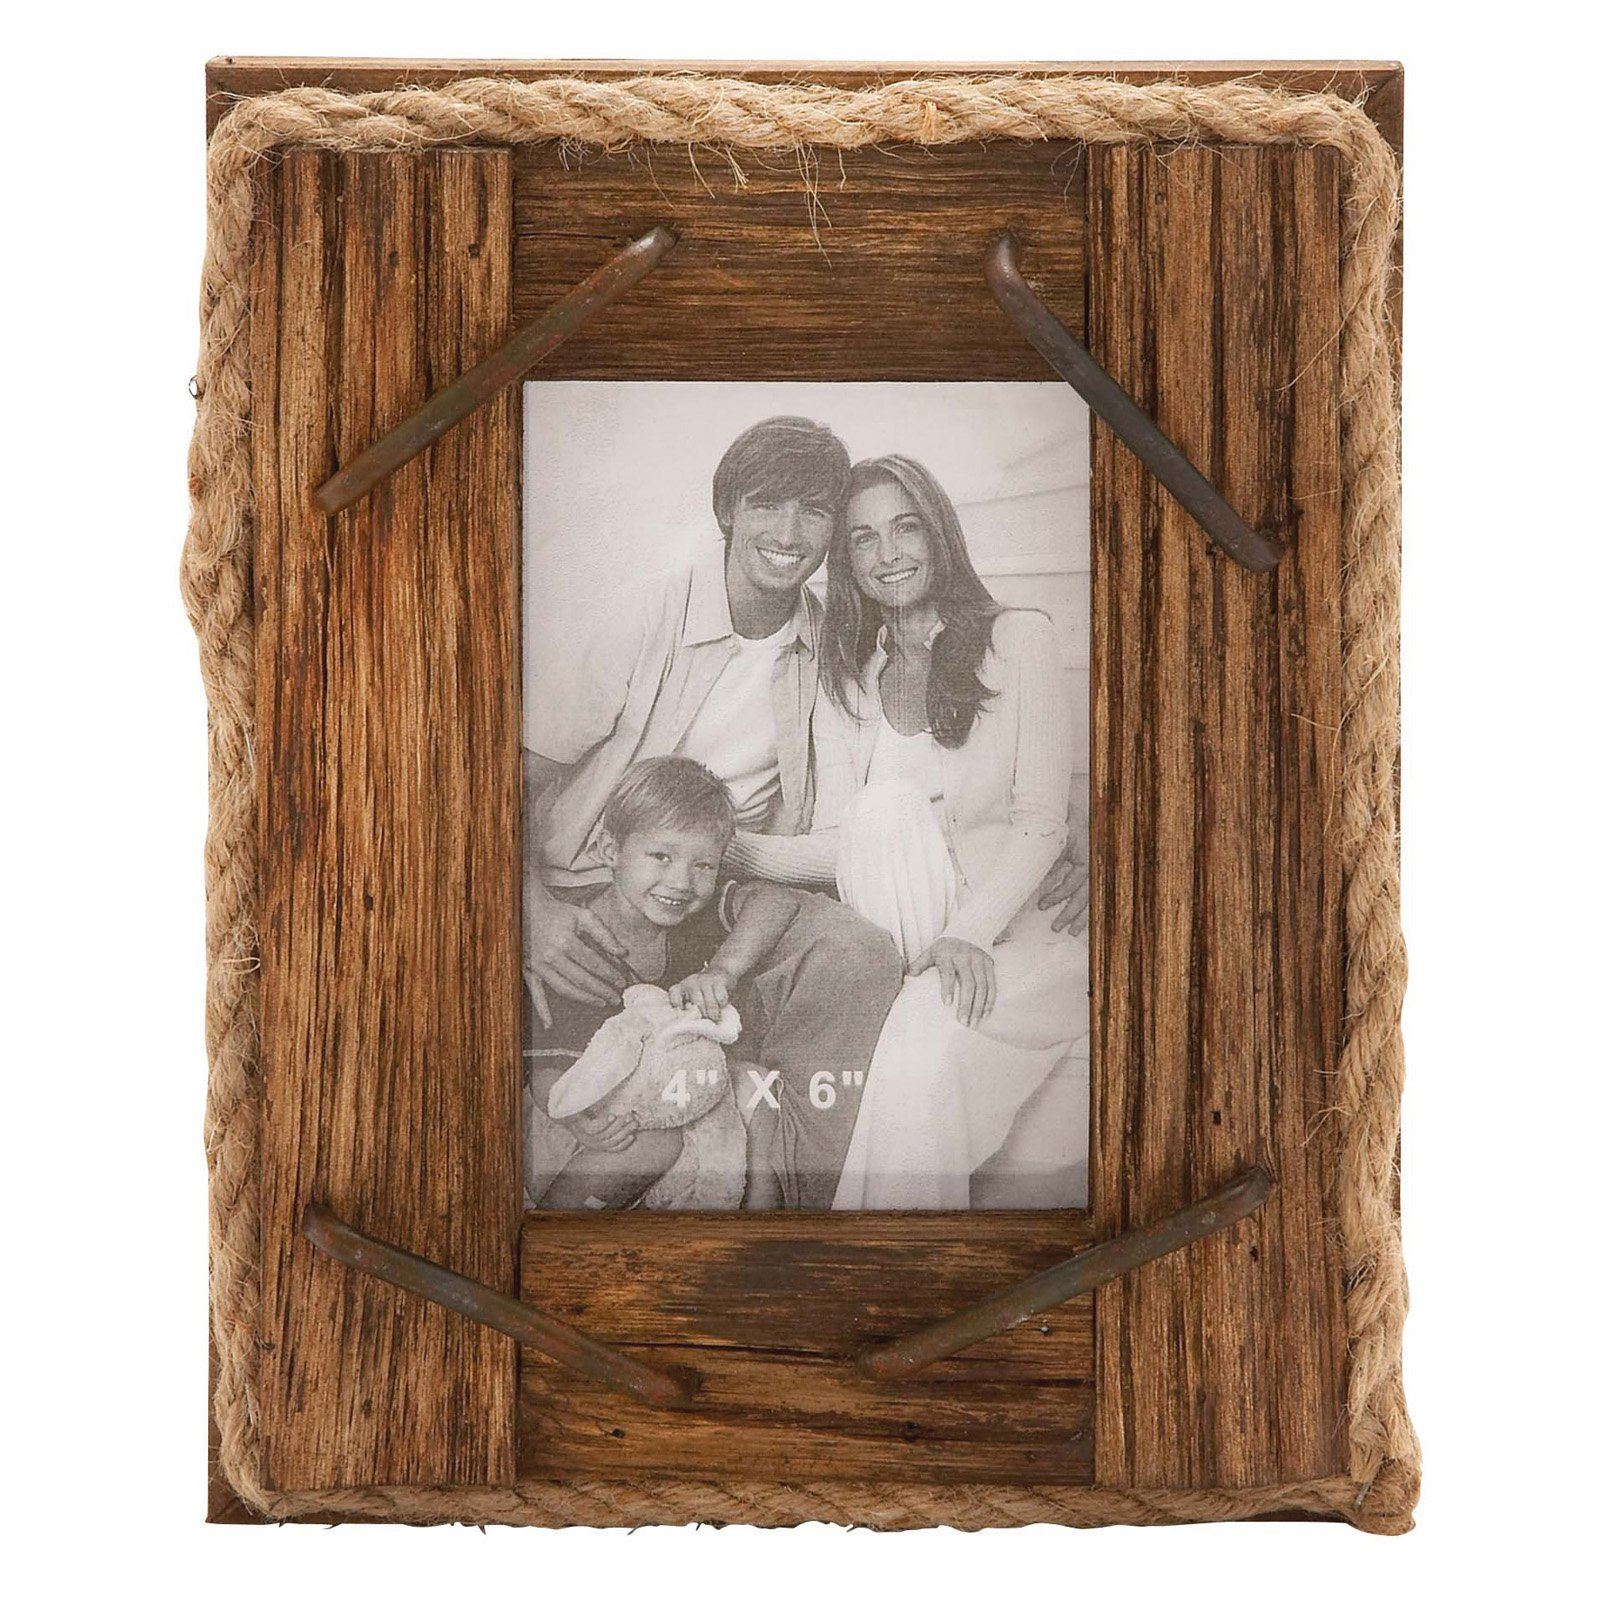 Woodland Imports Rustic Wood and Rope Picture Frame